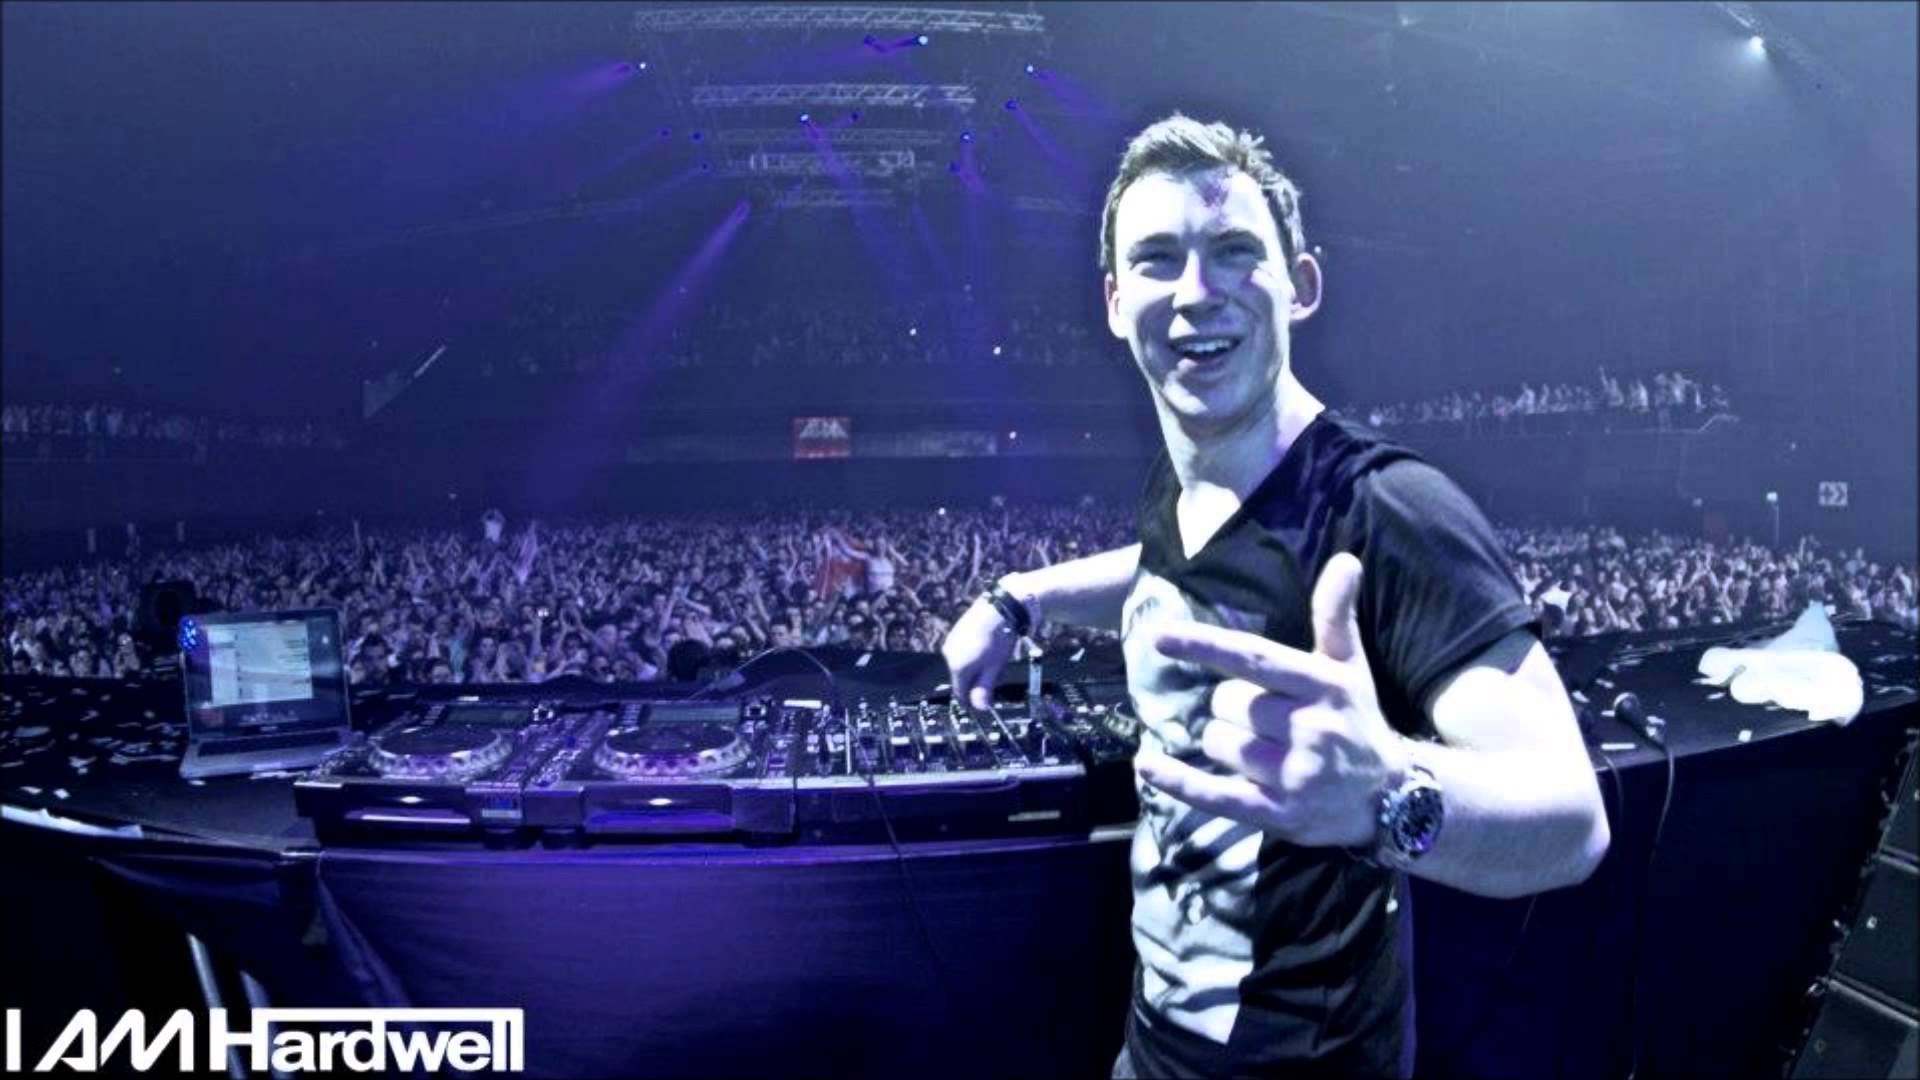 Dj Hardwell Announces His North American Tour Quot I Am